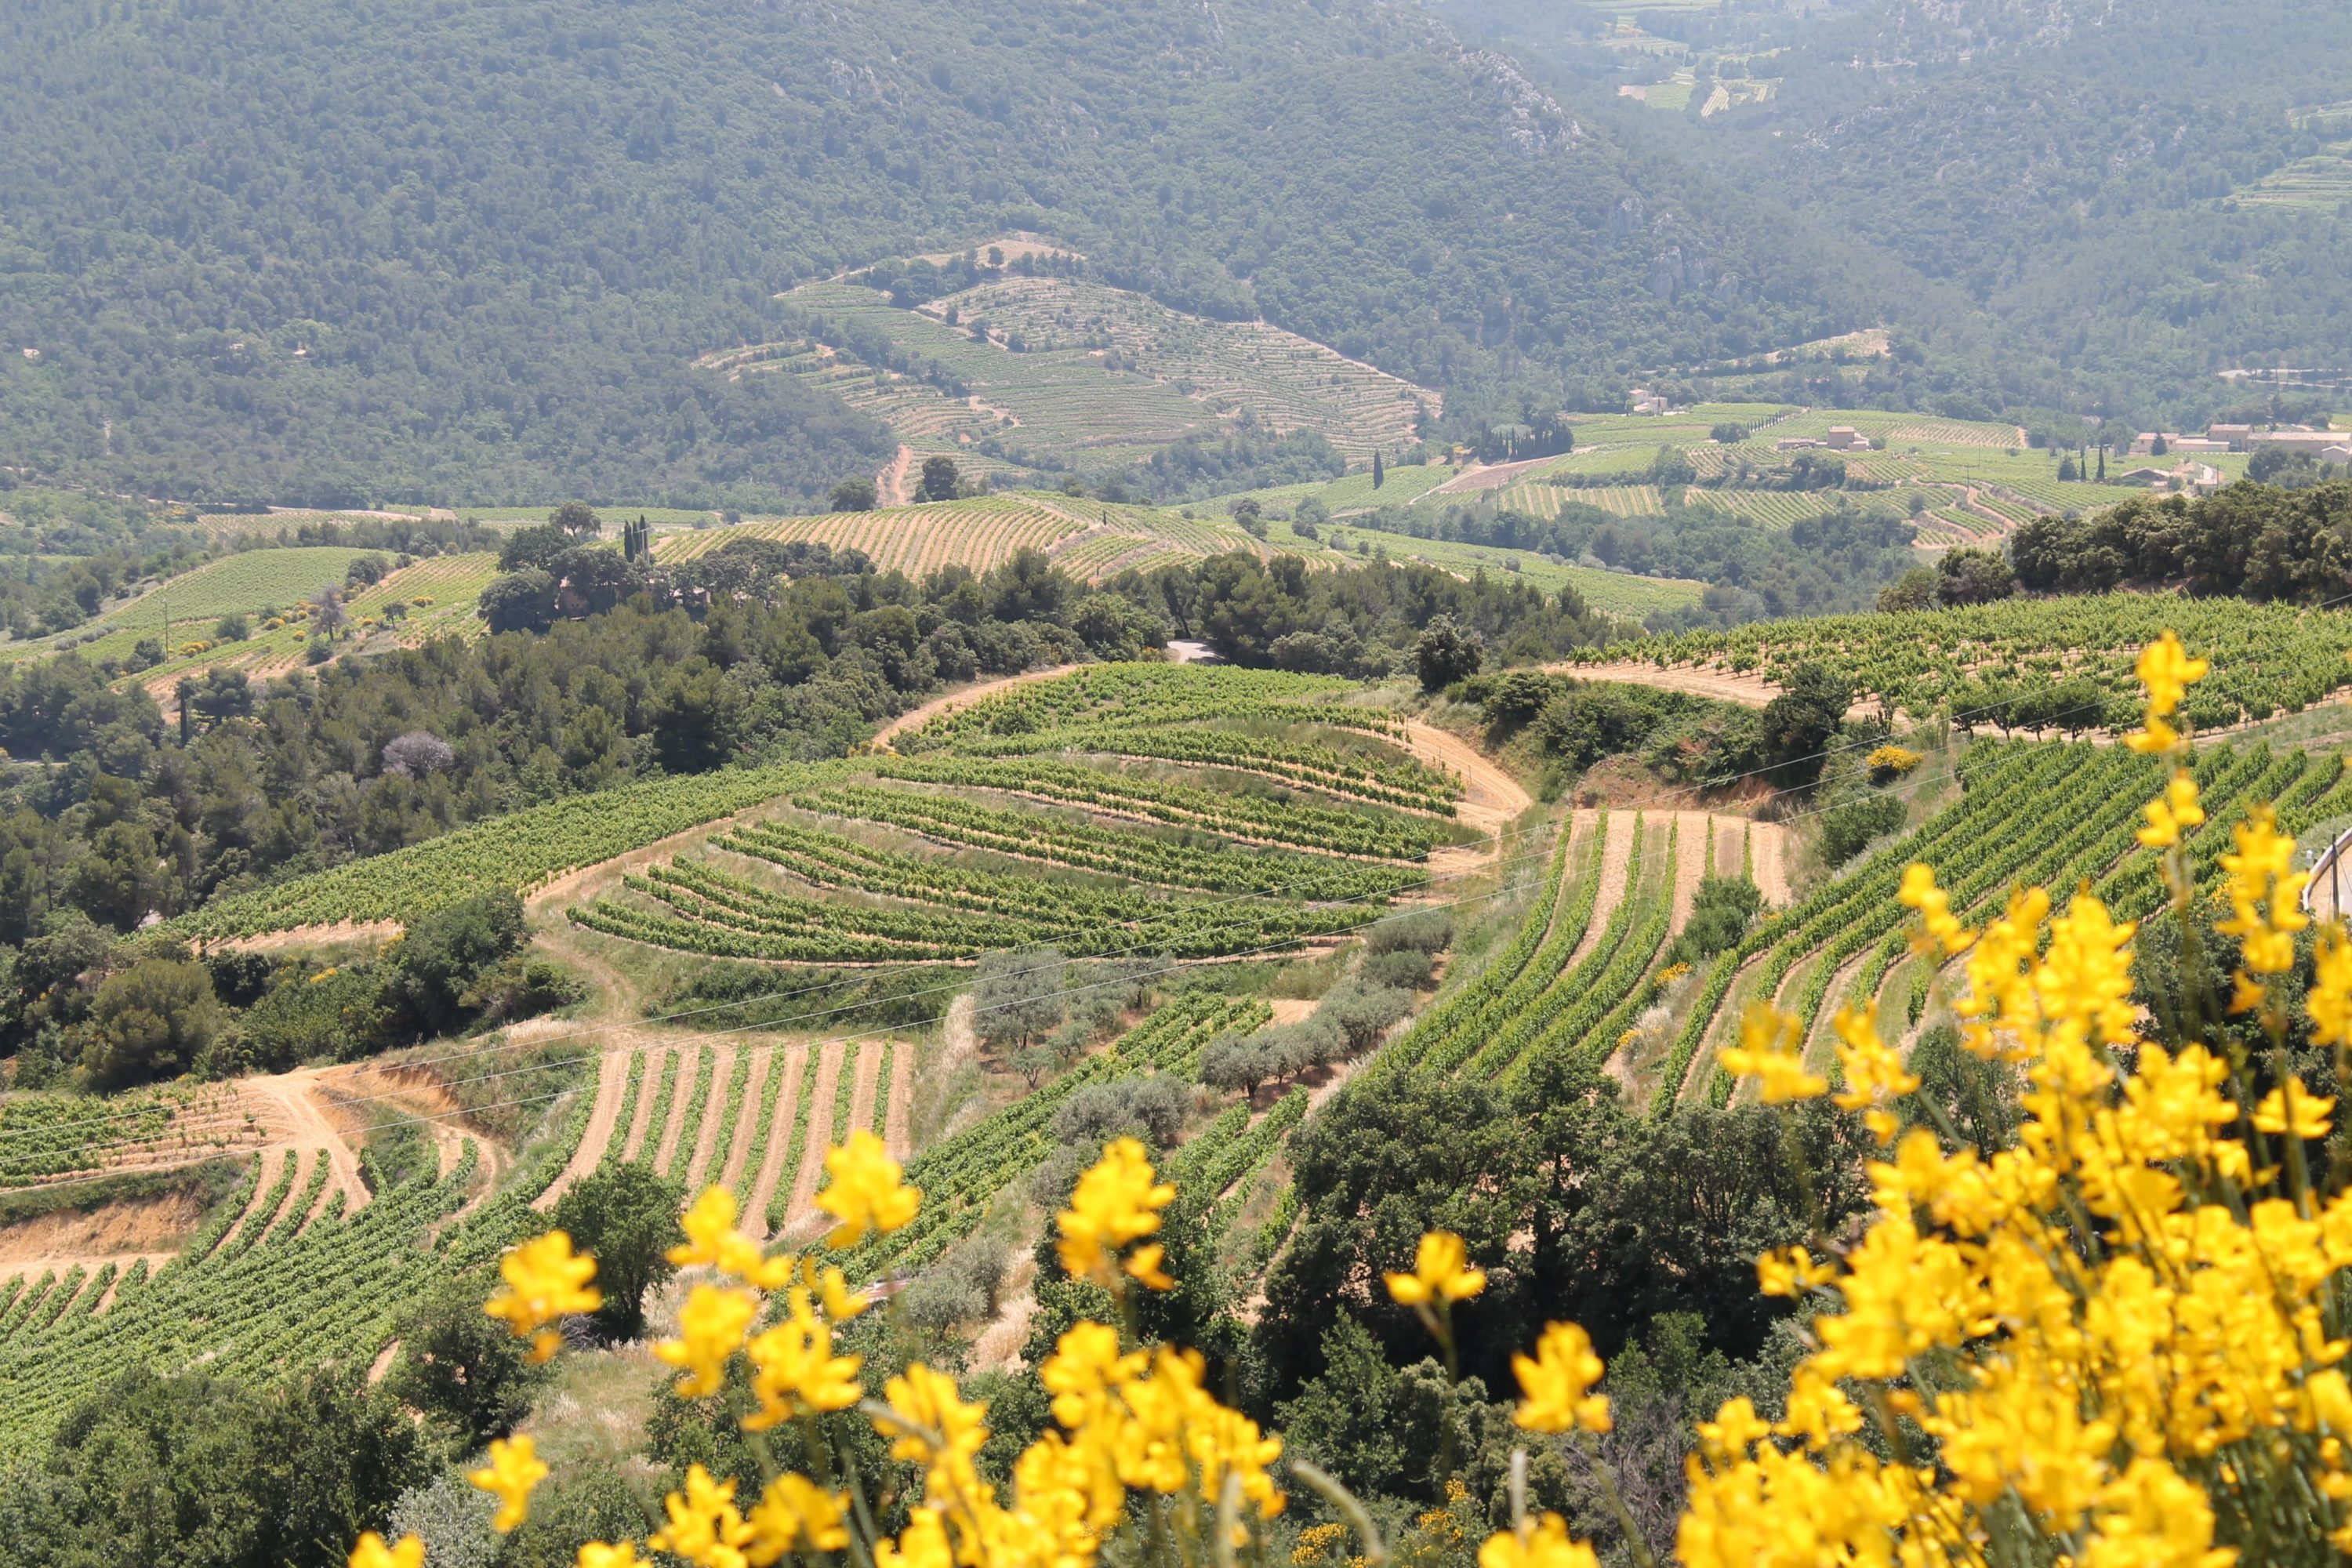 Rhone Valley wine tour, hilltop vineyards